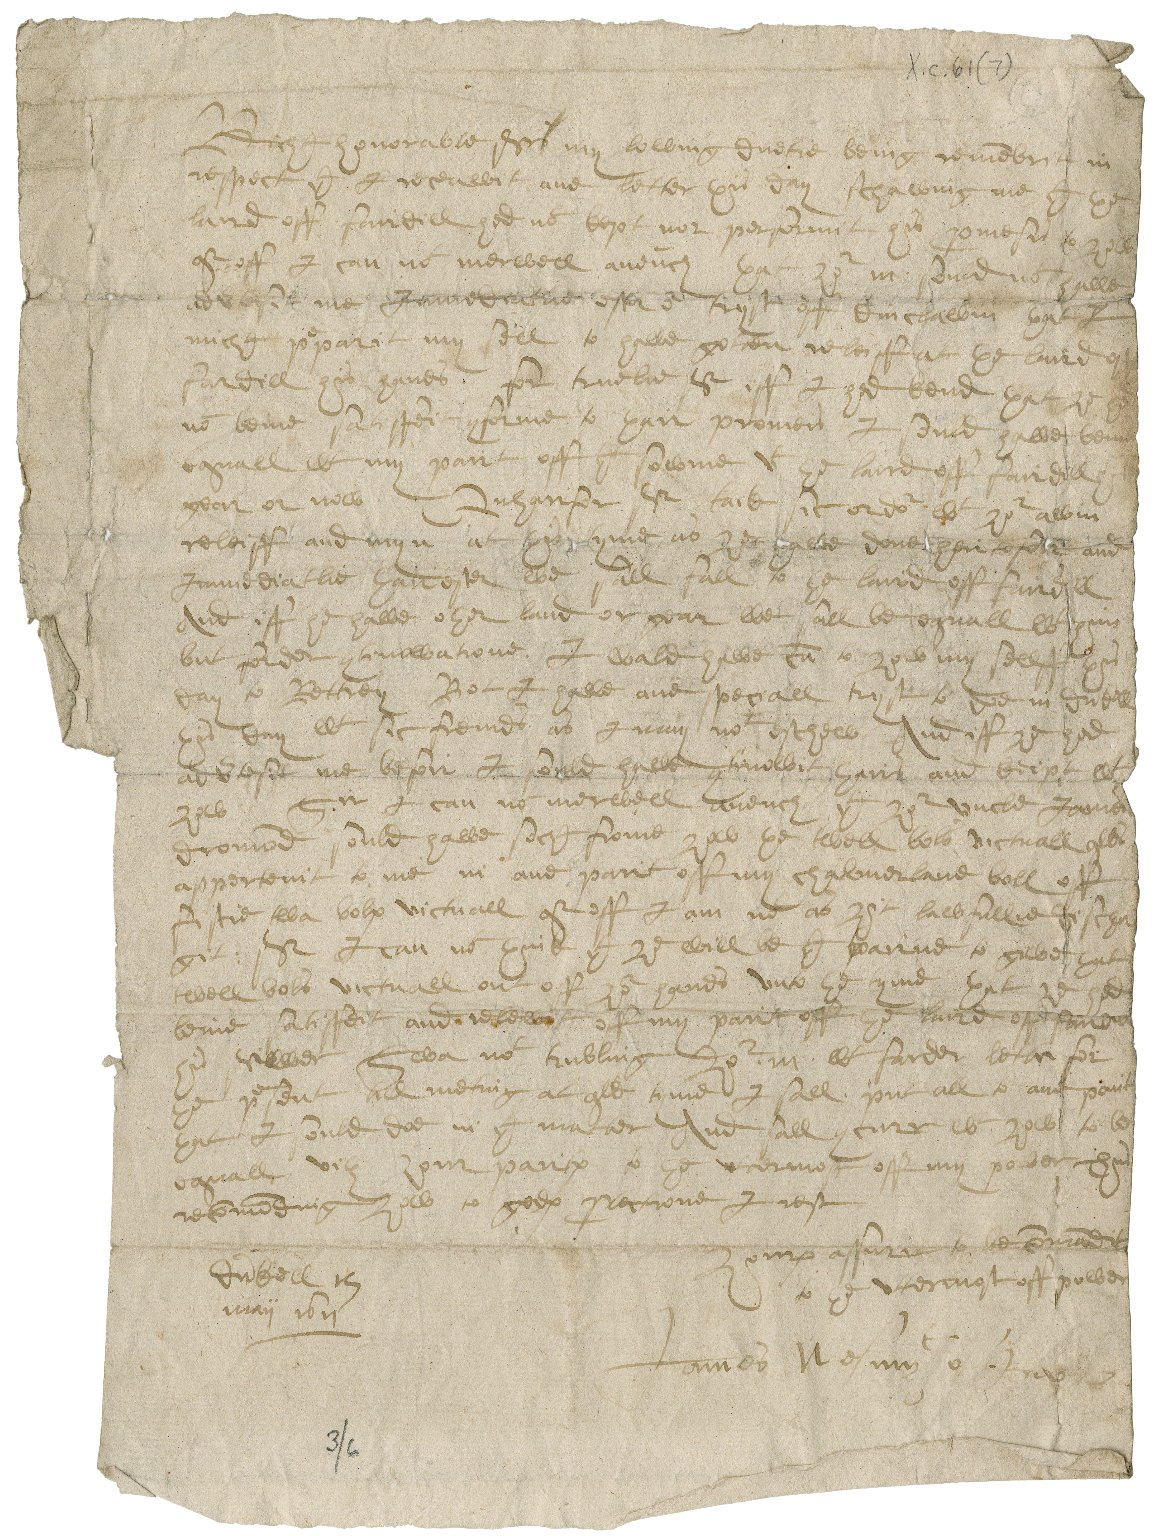 Letter from James Nasmyth of Inver to Sylvester Rattray of Craighall, Dunkeld